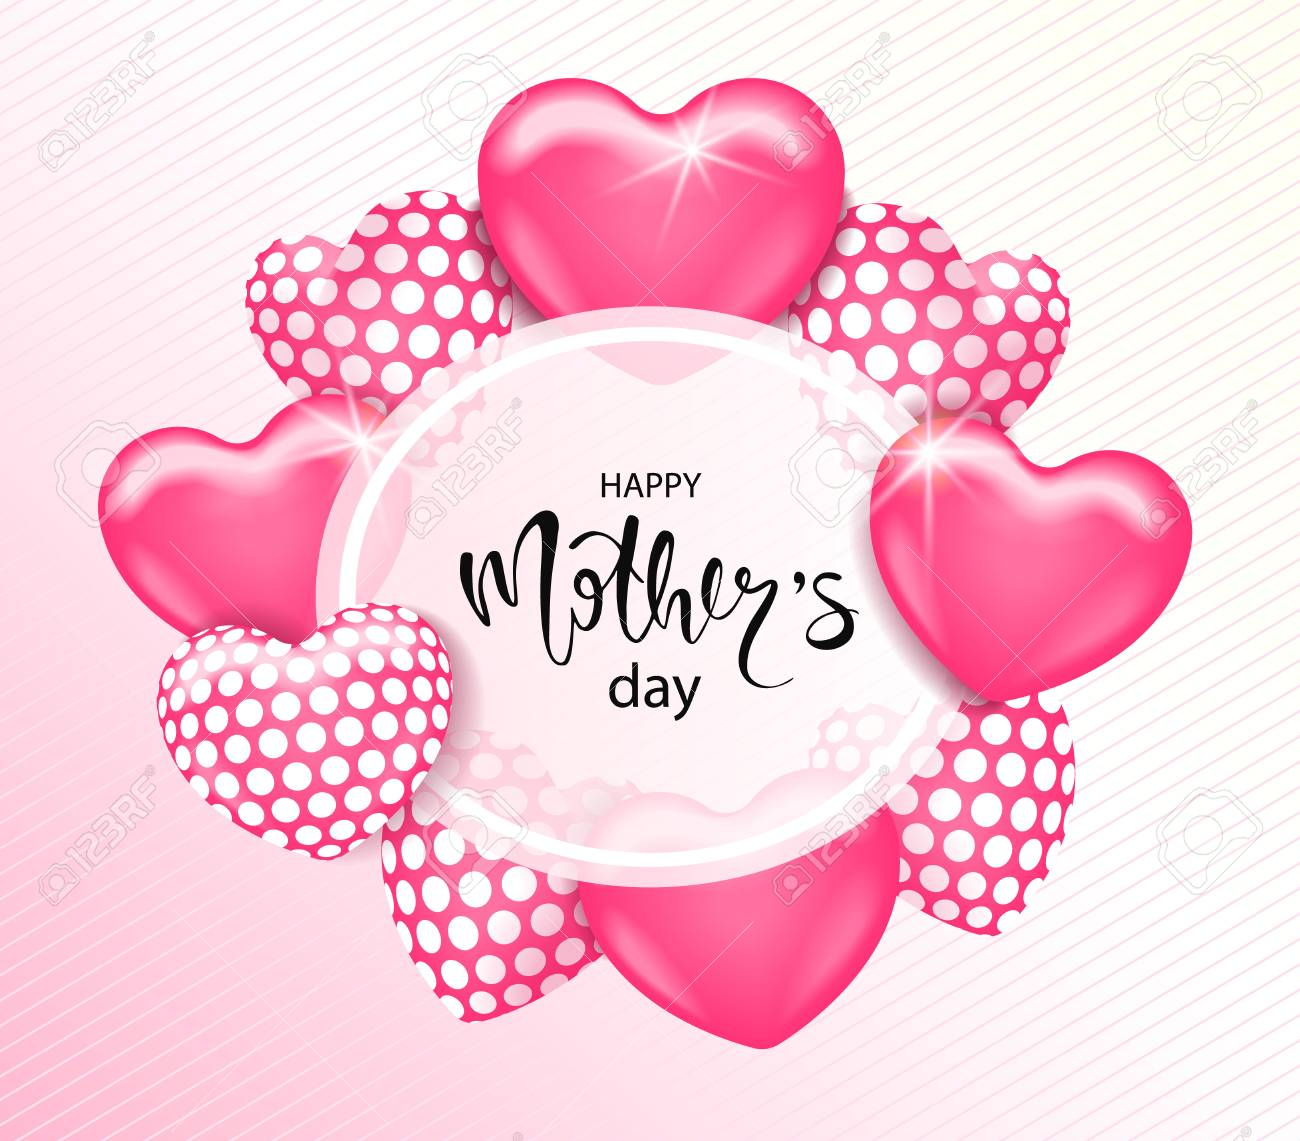 Happy Mothers Day Card Template With Cute Pink Heart Balloons - Free mother's day card templates